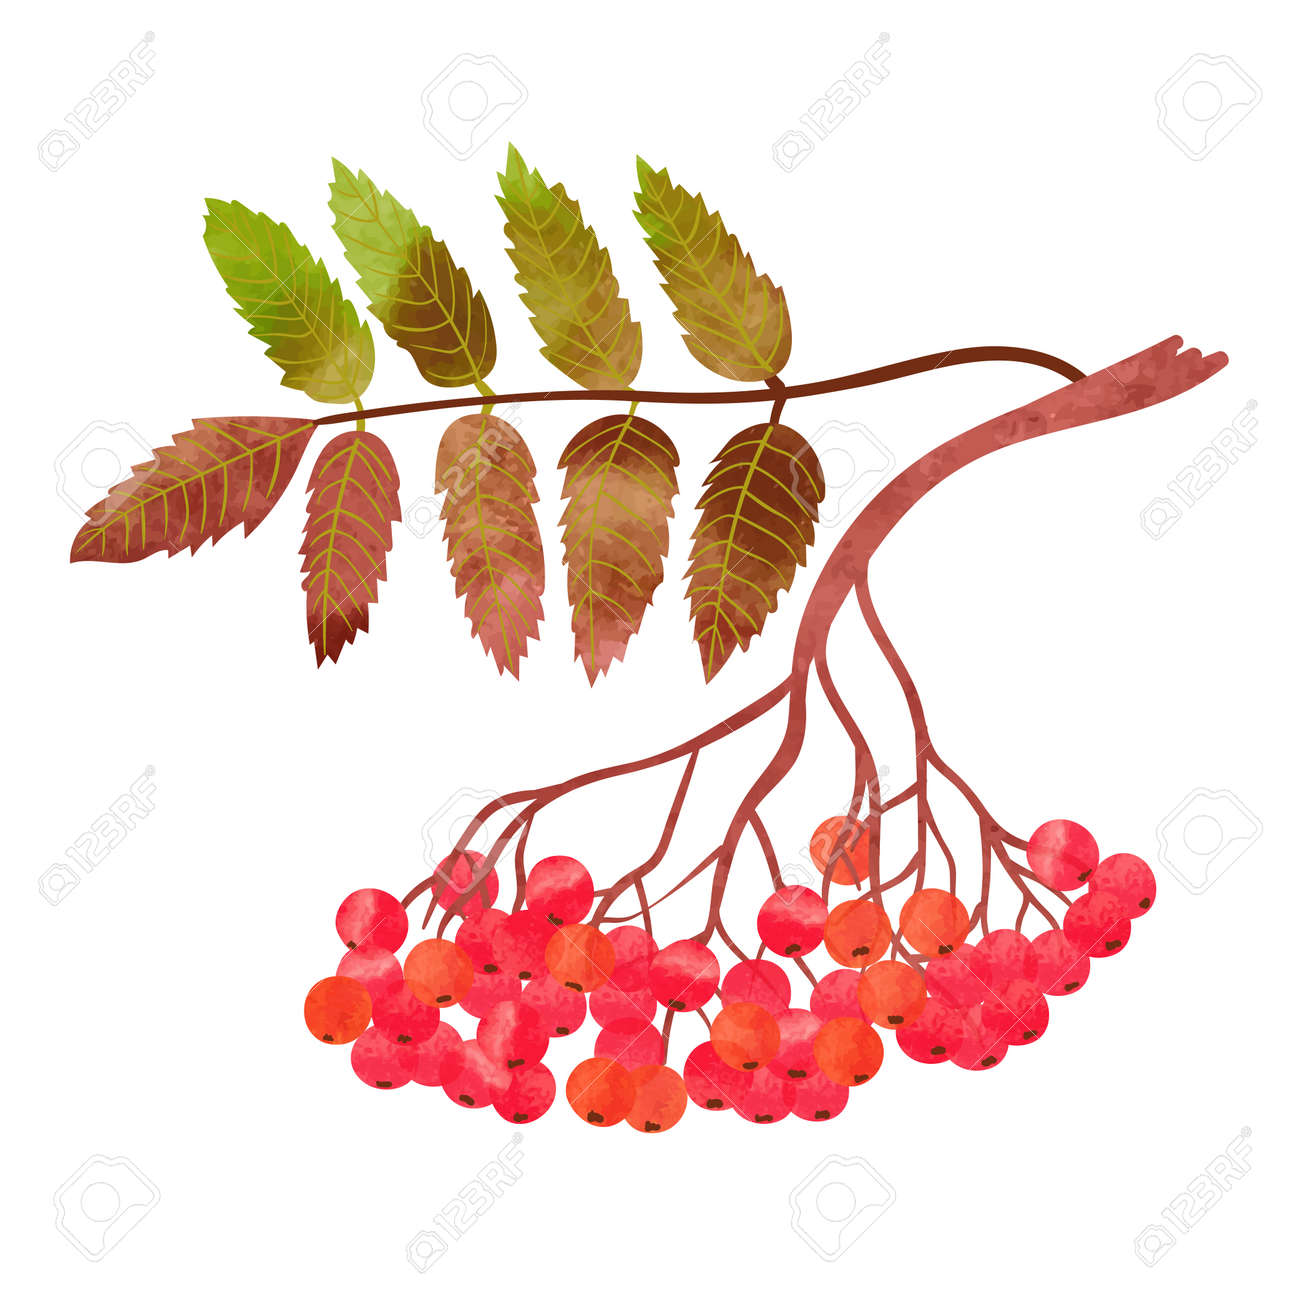 Watercolor rowan branch with berries isolated on white background. Vector illustration. - 66325726